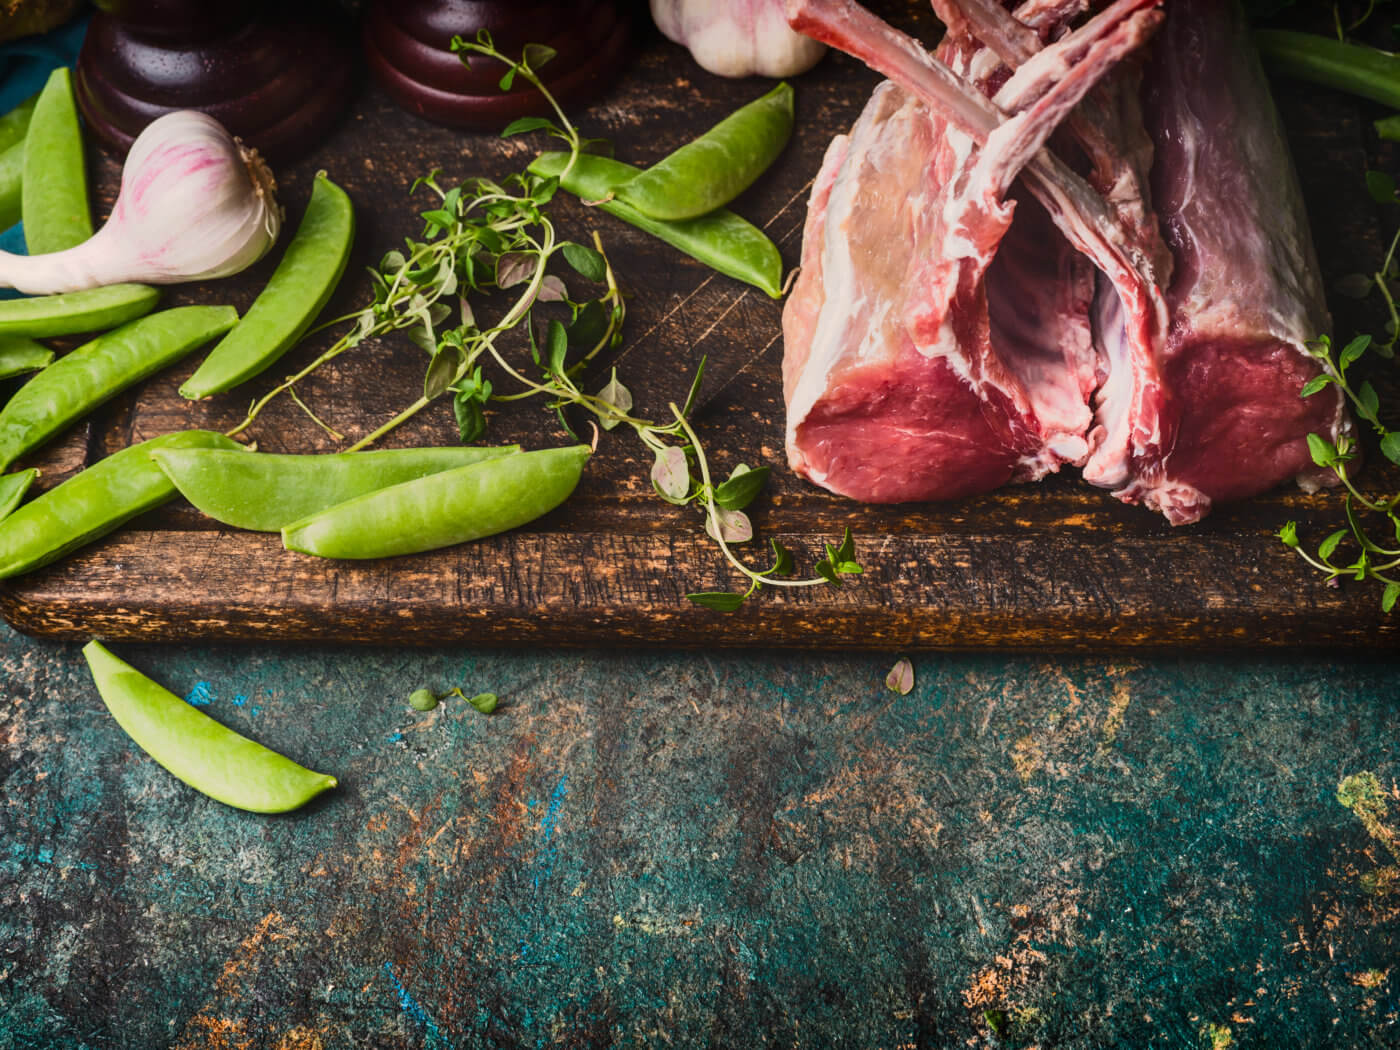 Rack of lamb with green pea pods, cooking preparation on rustic background, top view, border